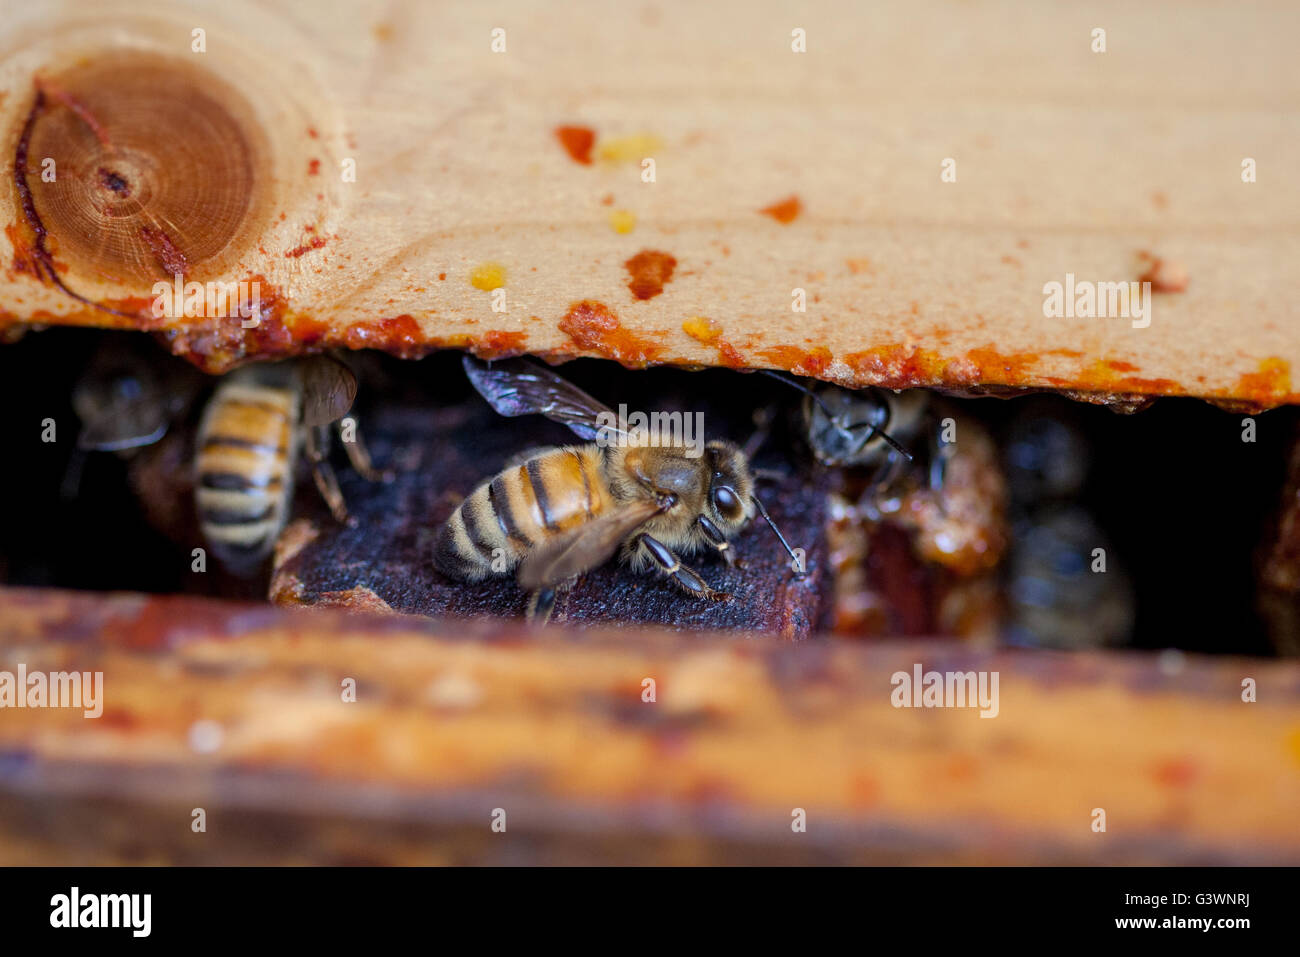 A macro view of a honey bee inside a pollinator of an aviary pallet where honey bees are kept to produce honey. - Stock Image